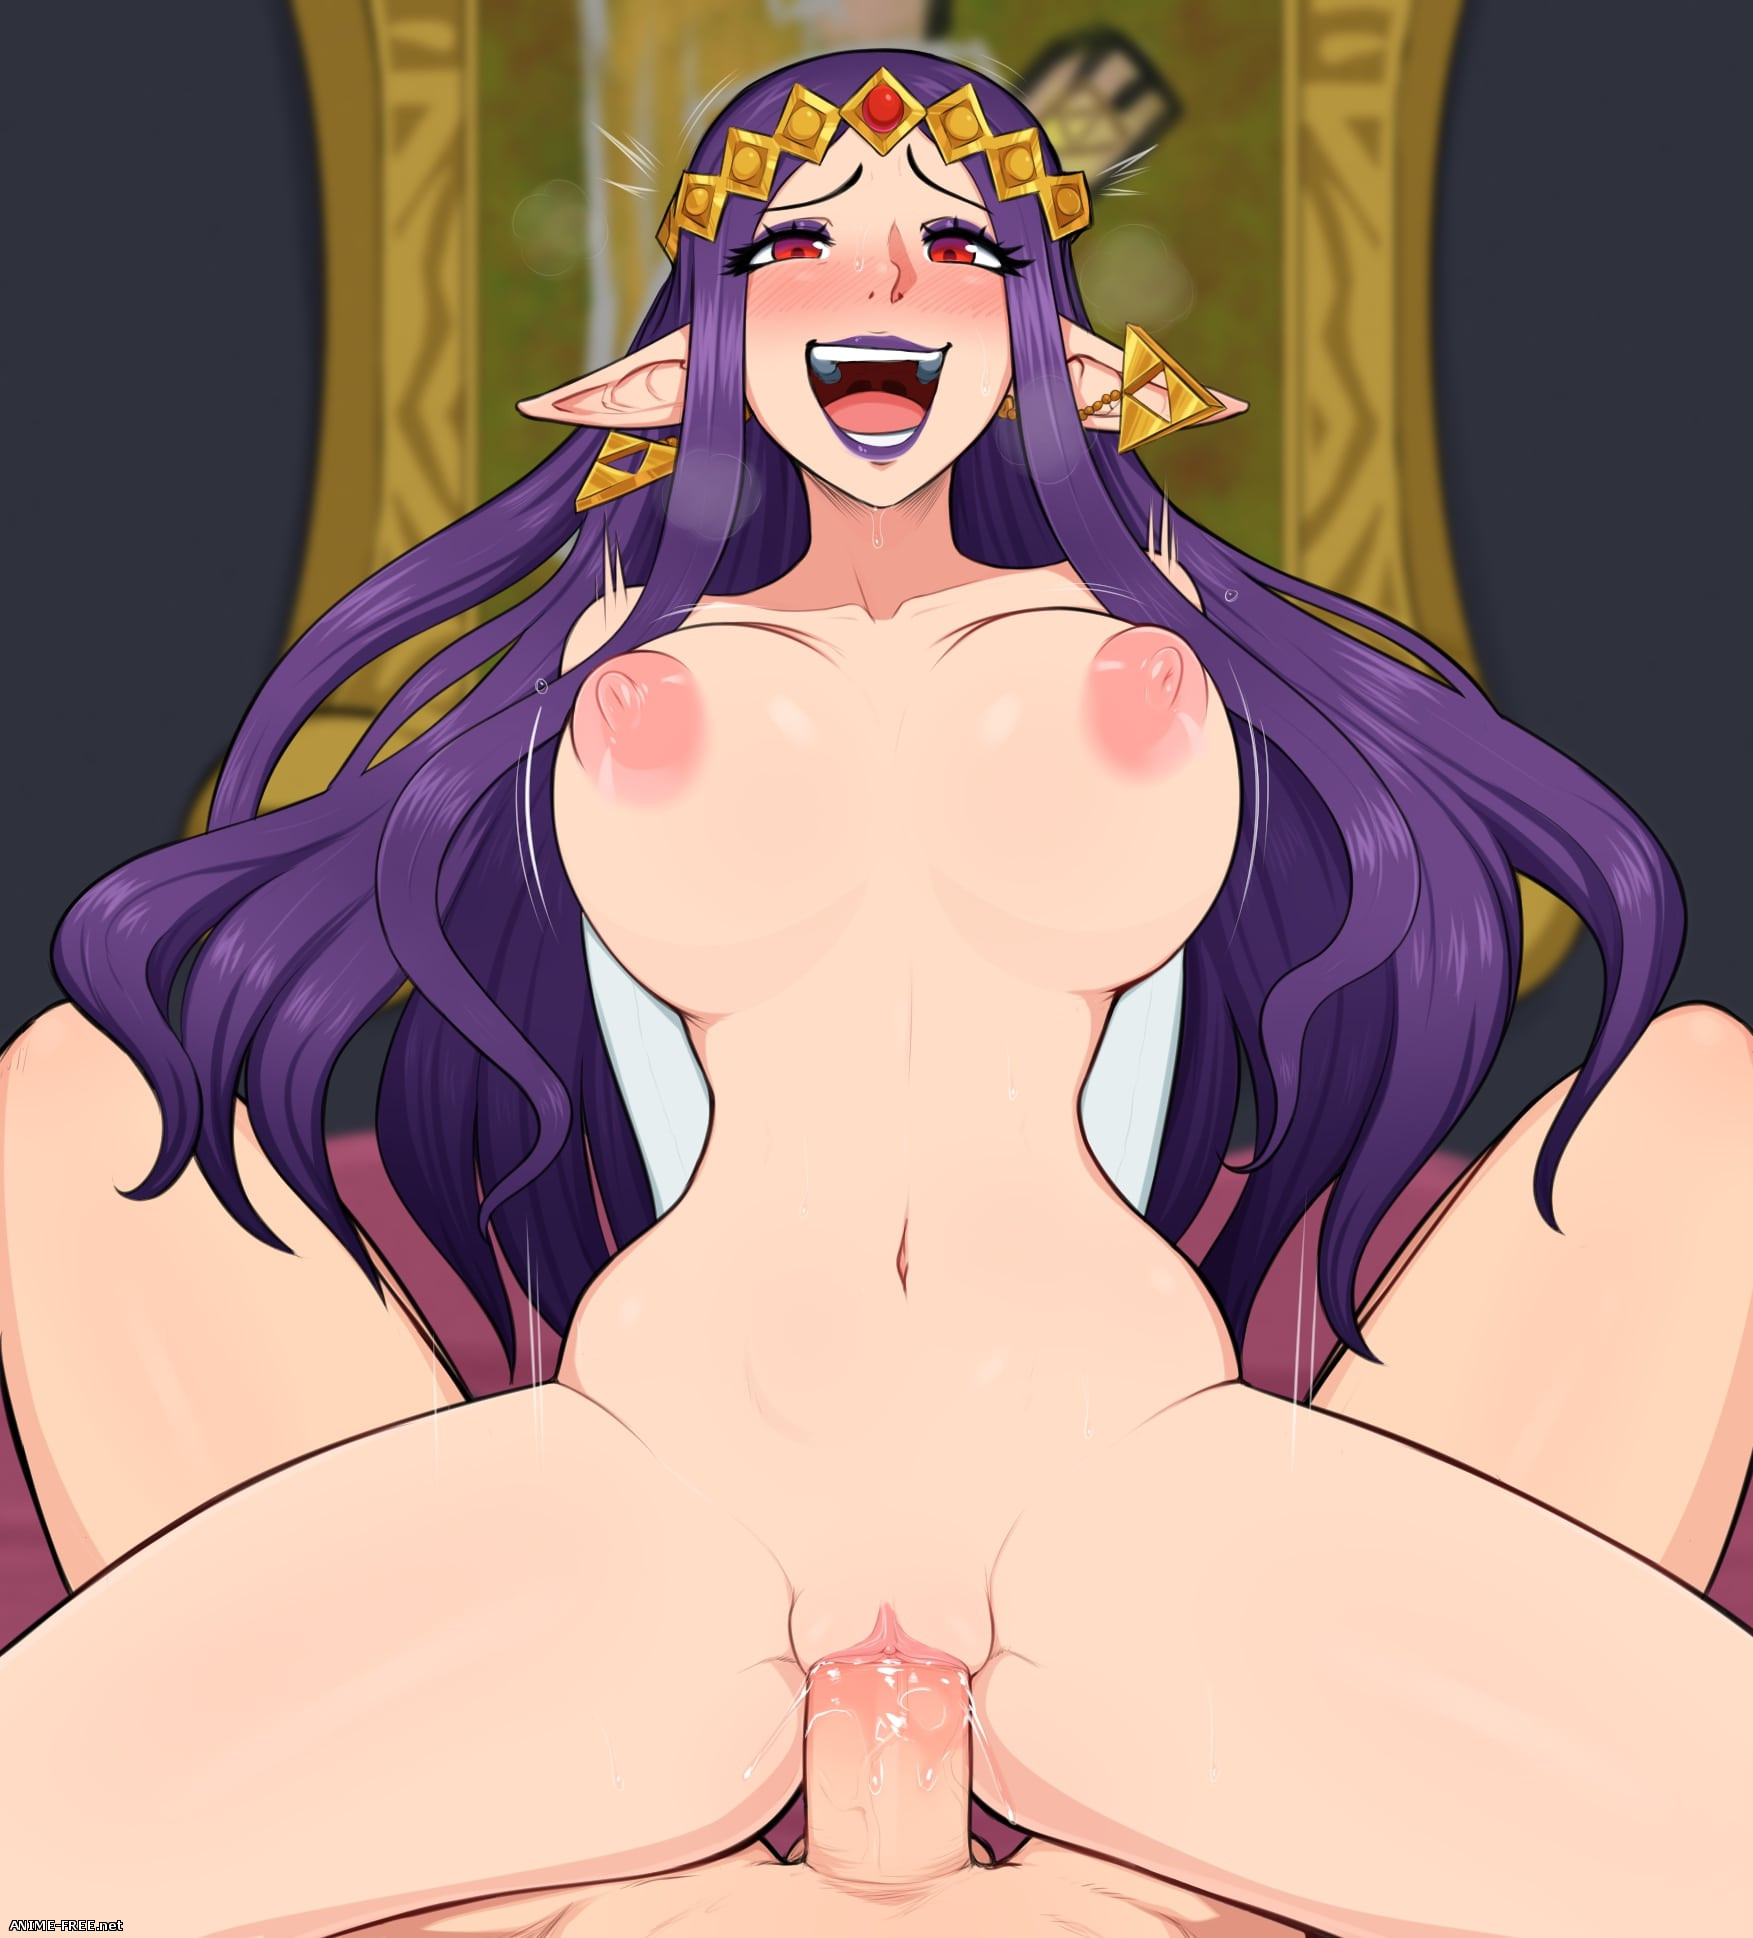 Afrobull (ArtWork Collection) - Сборник хентай арта [Uncen] [JPG,PNG] Hentai ART